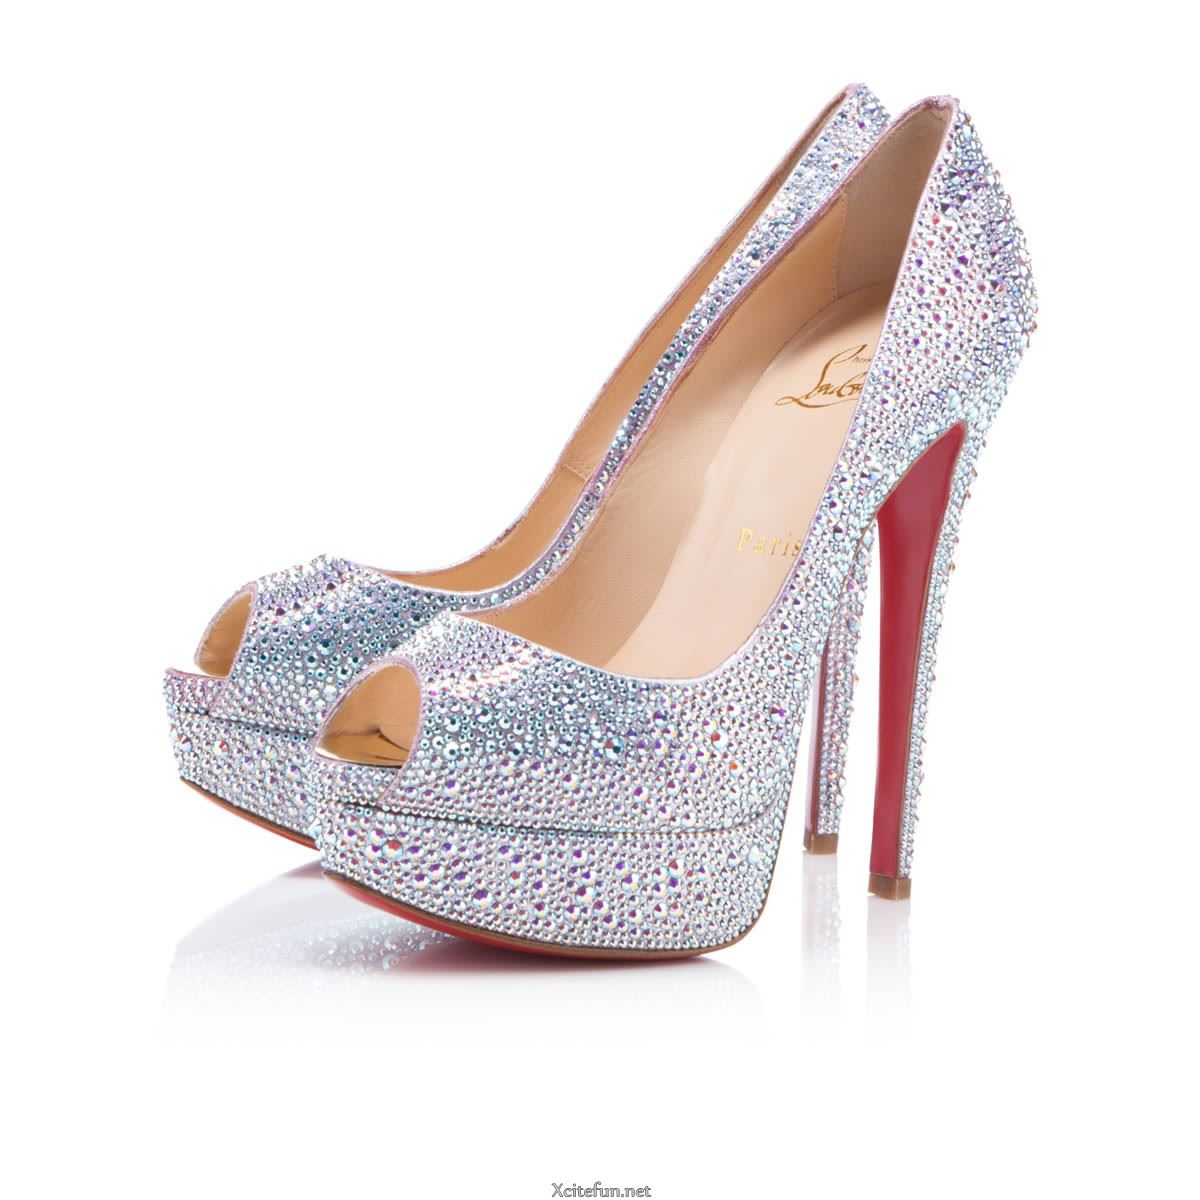 high heel christian louboutin footwear for bridal. Black Bedroom Furniture Sets. Home Design Ideas